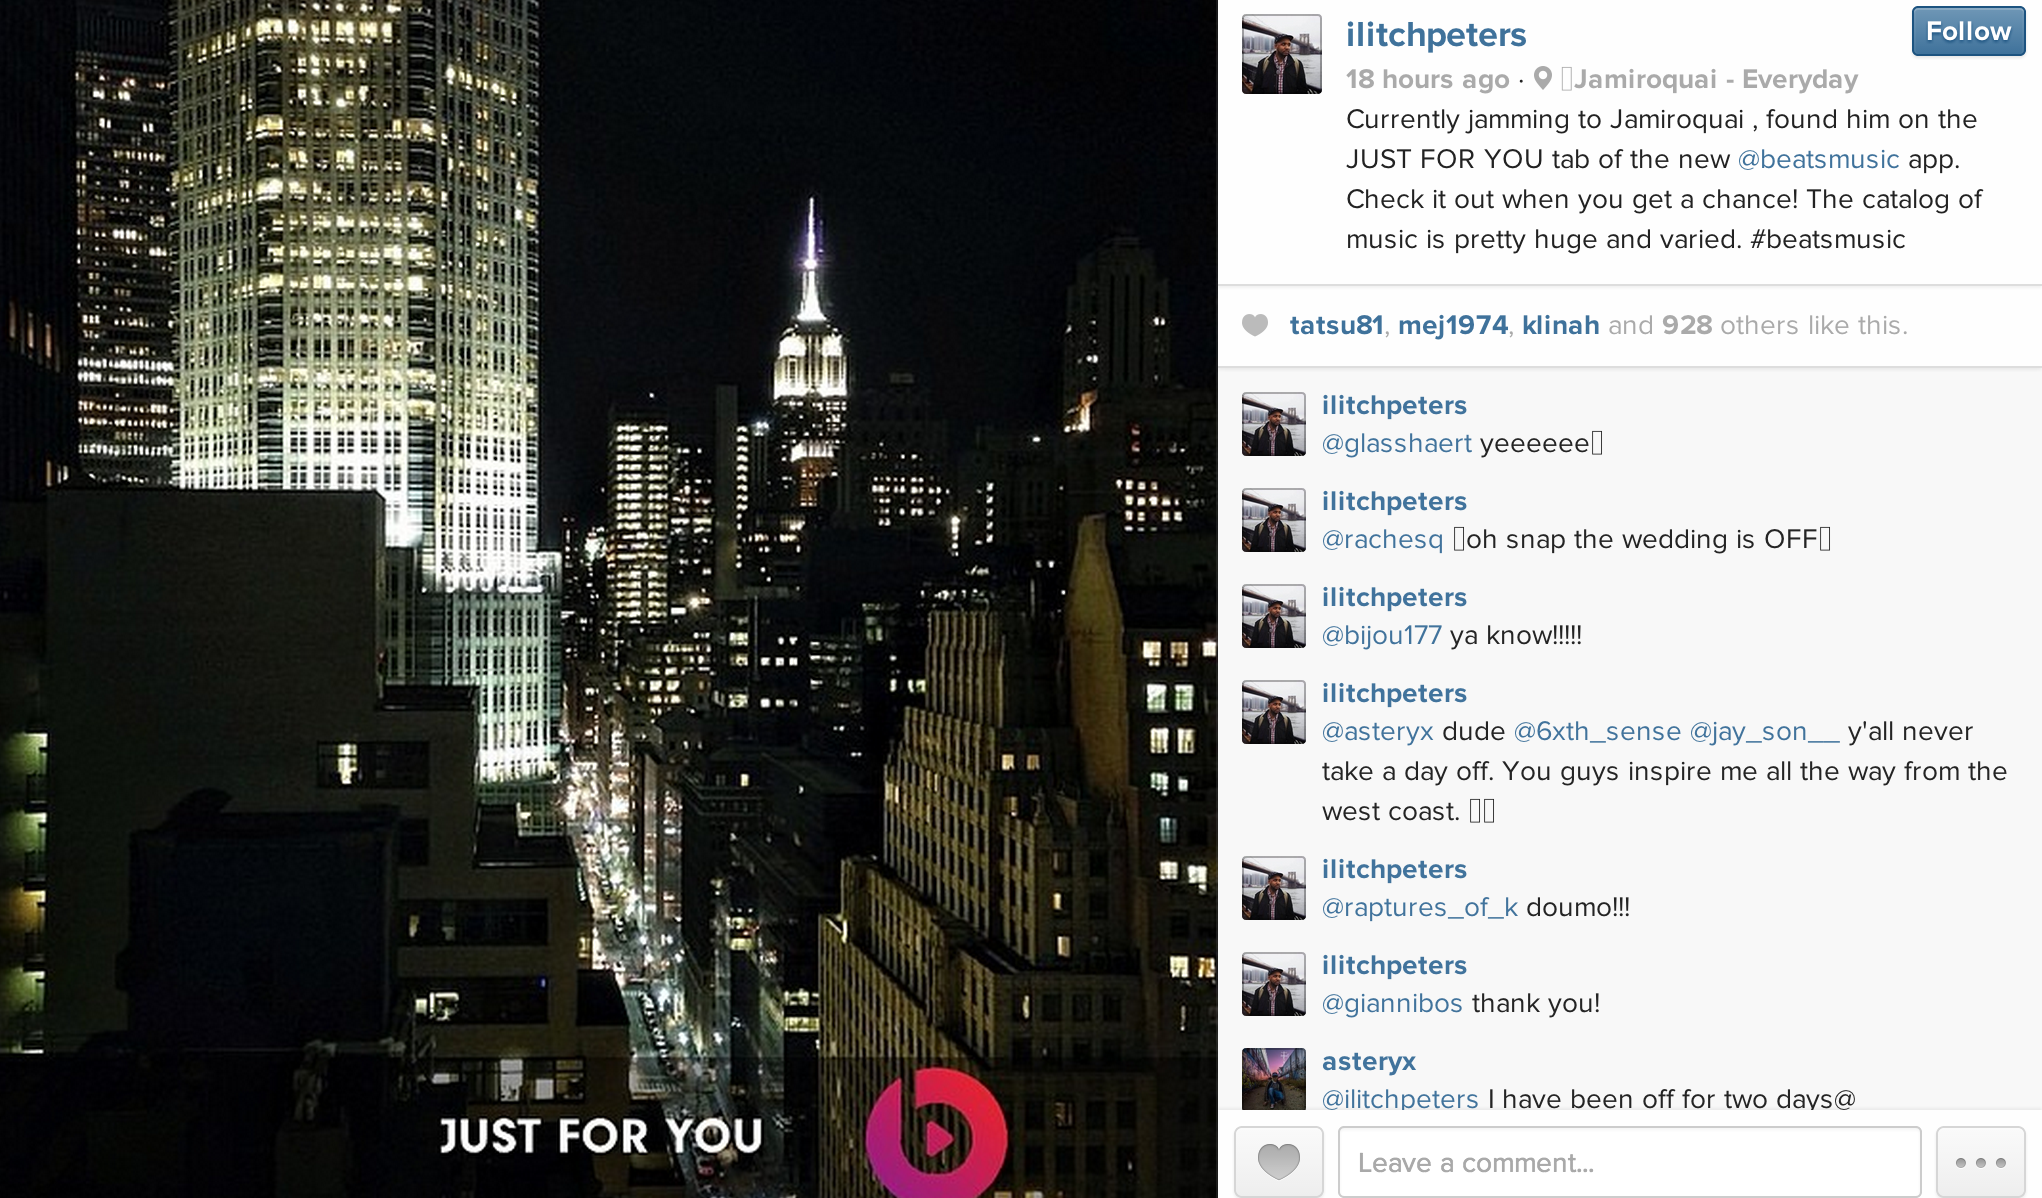 A recent campaign by Beats by Dre that has received some negative reactions on Instagram.